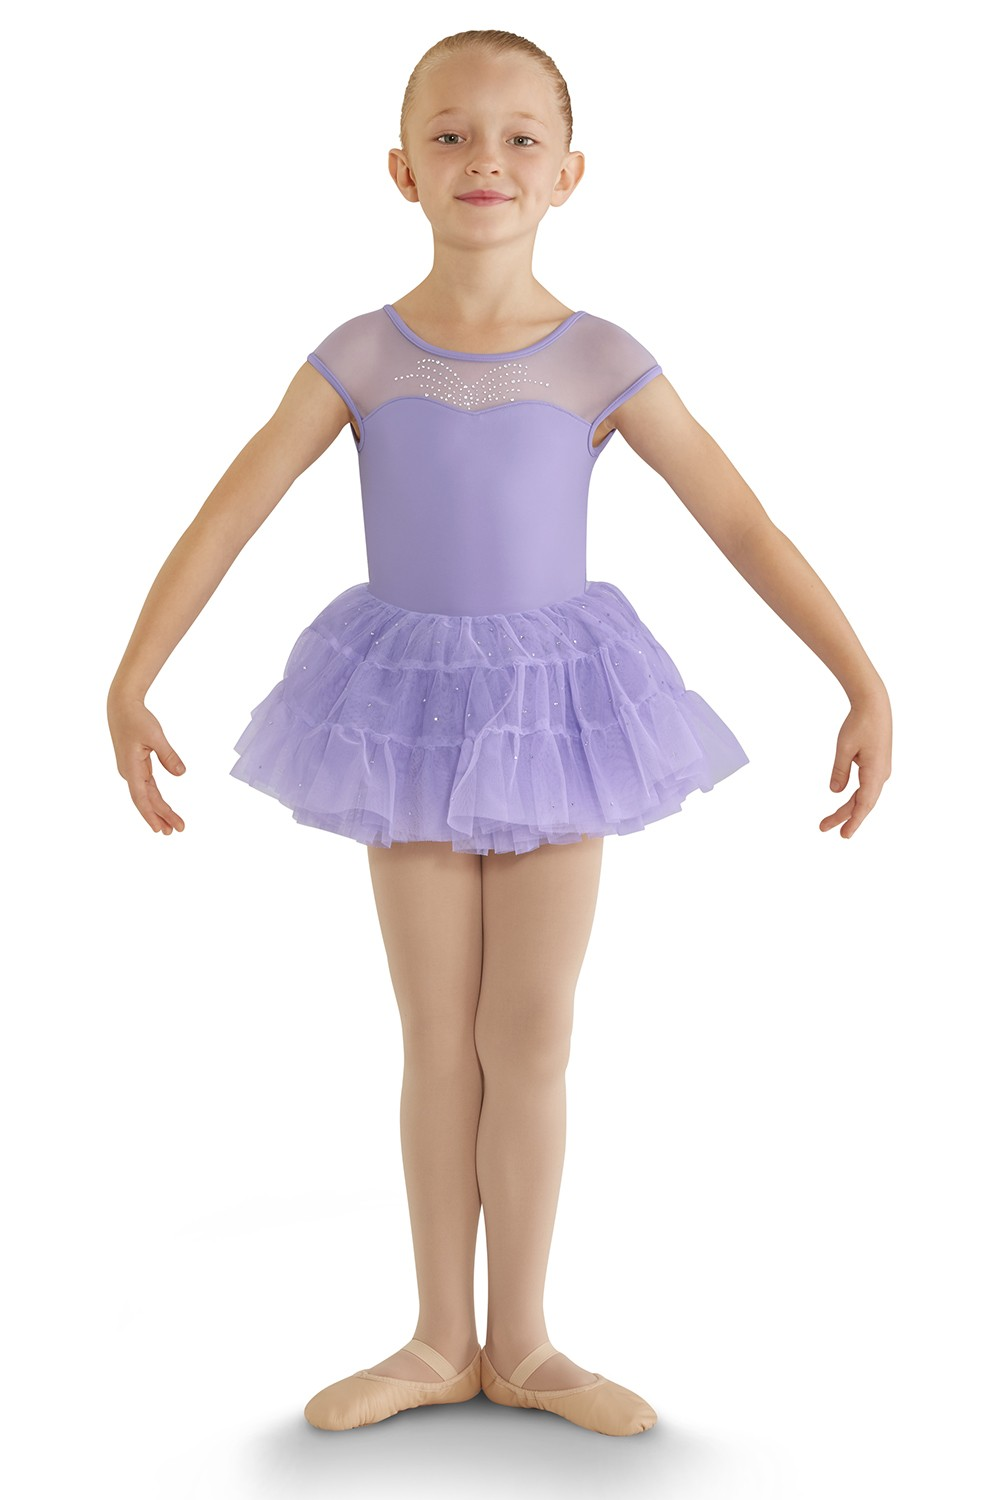 Alcor Children's Dance Skirts